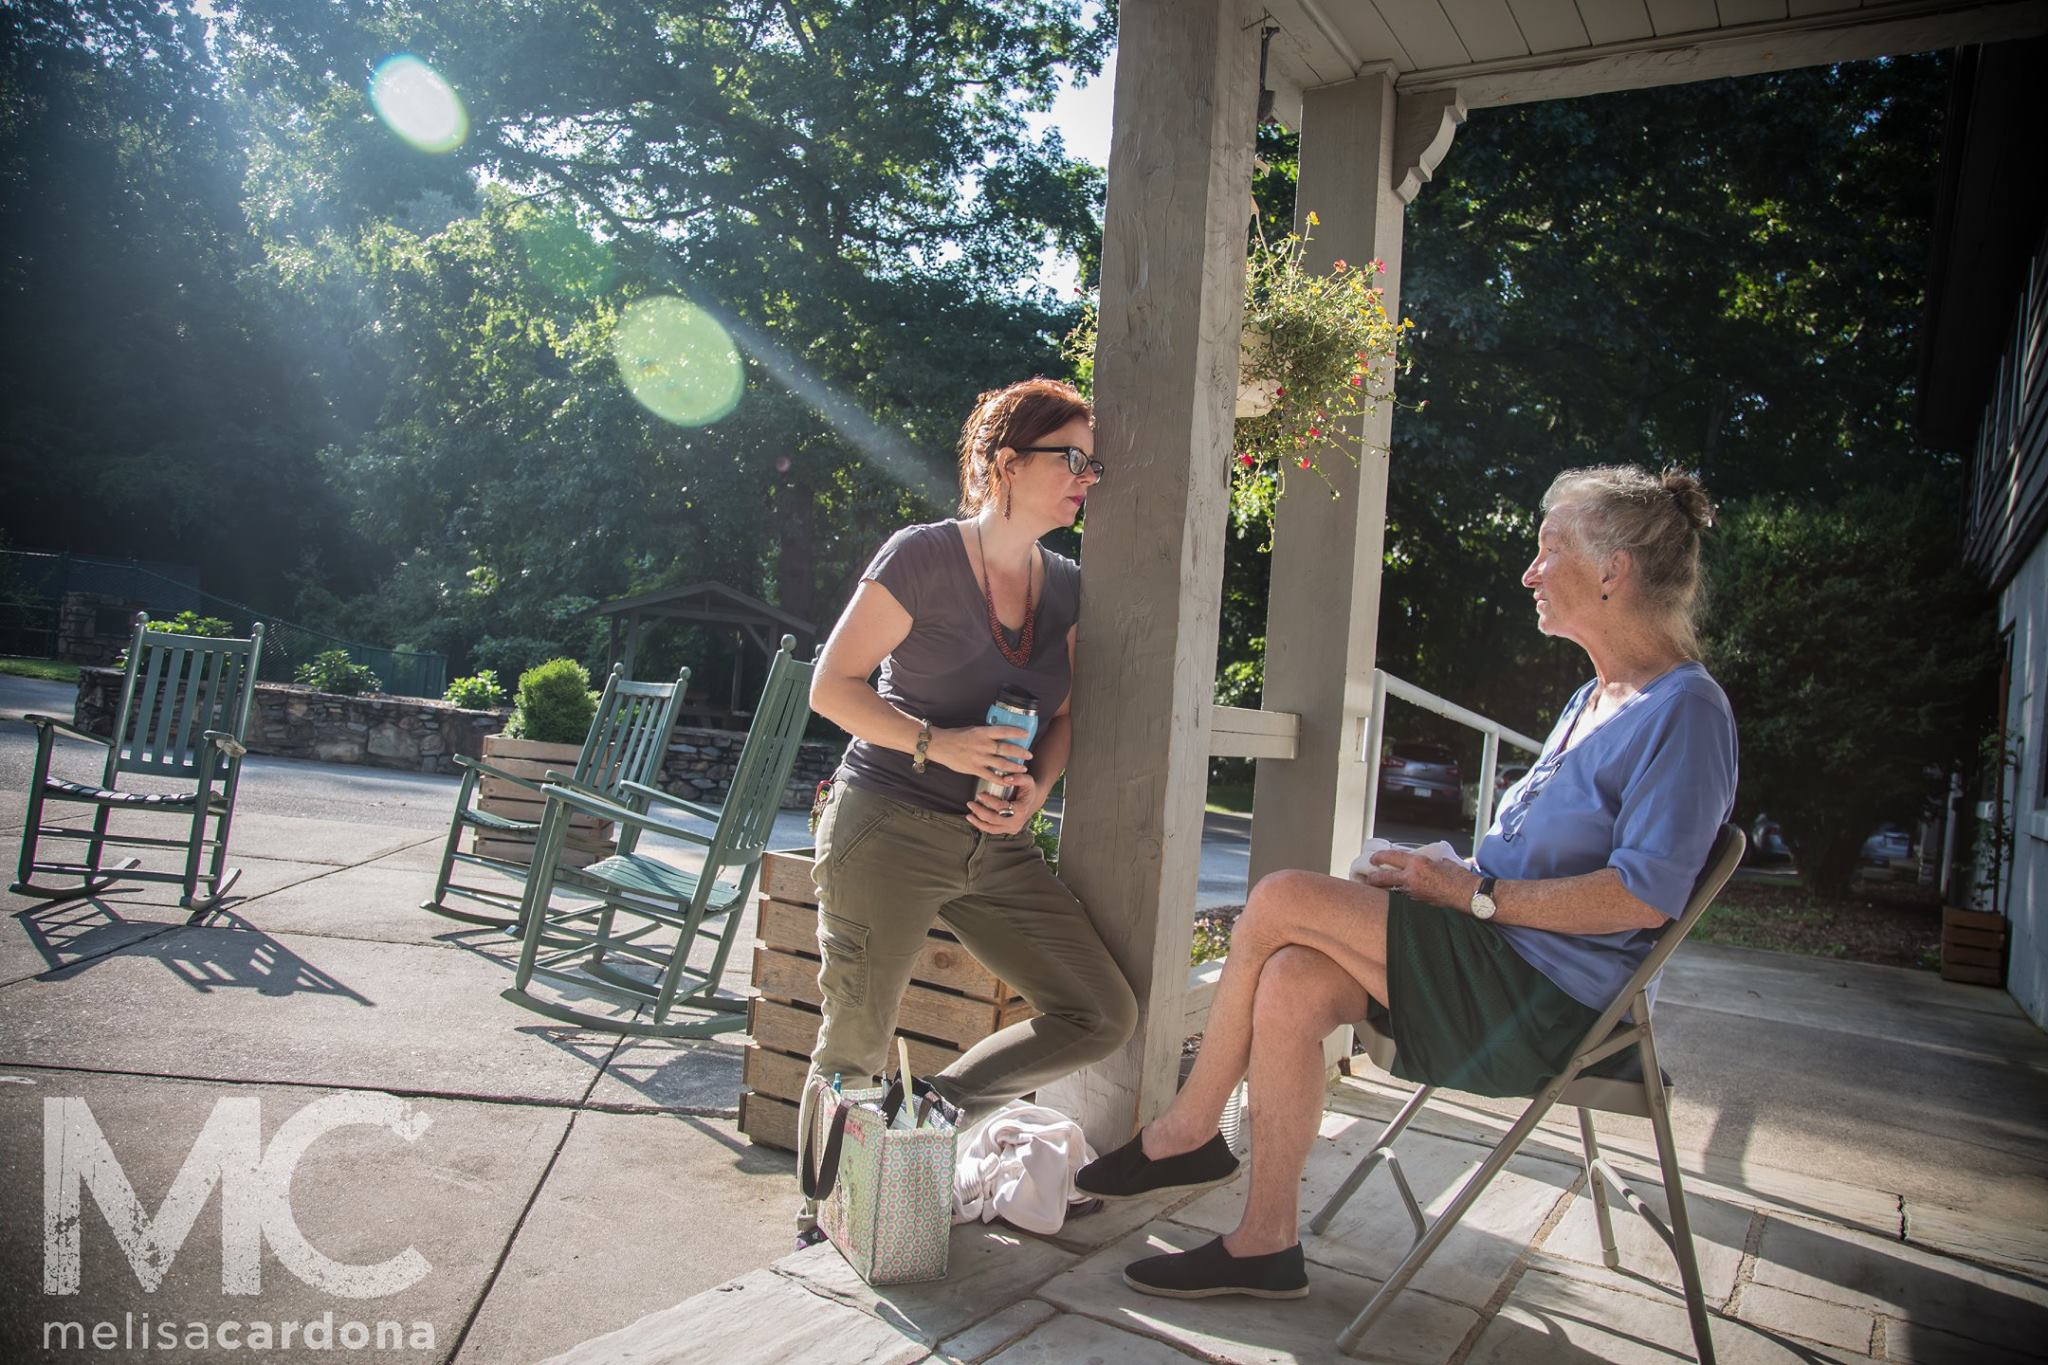 Two women of different generations sit on a porch talking to each other, the morning sun warms them from behind